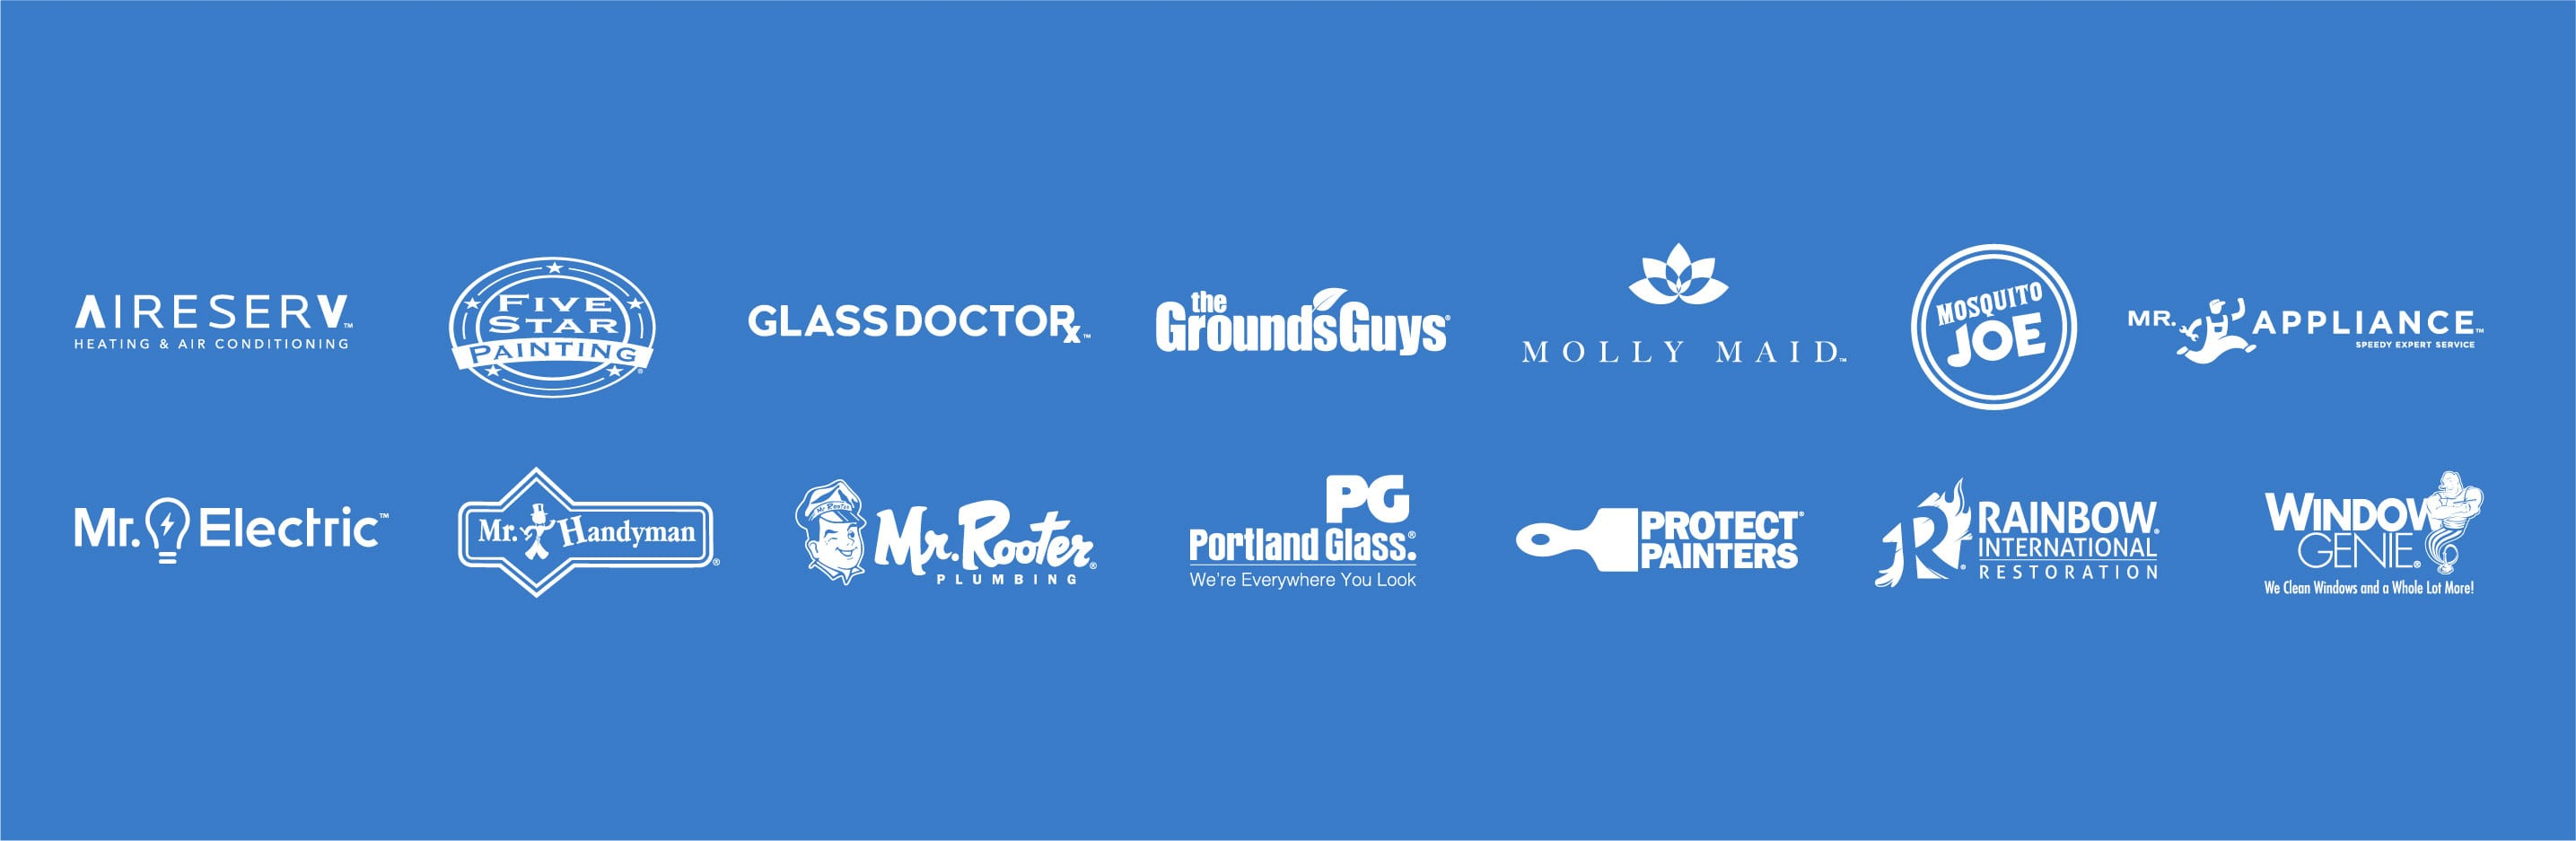 The Dwyer Group Brands